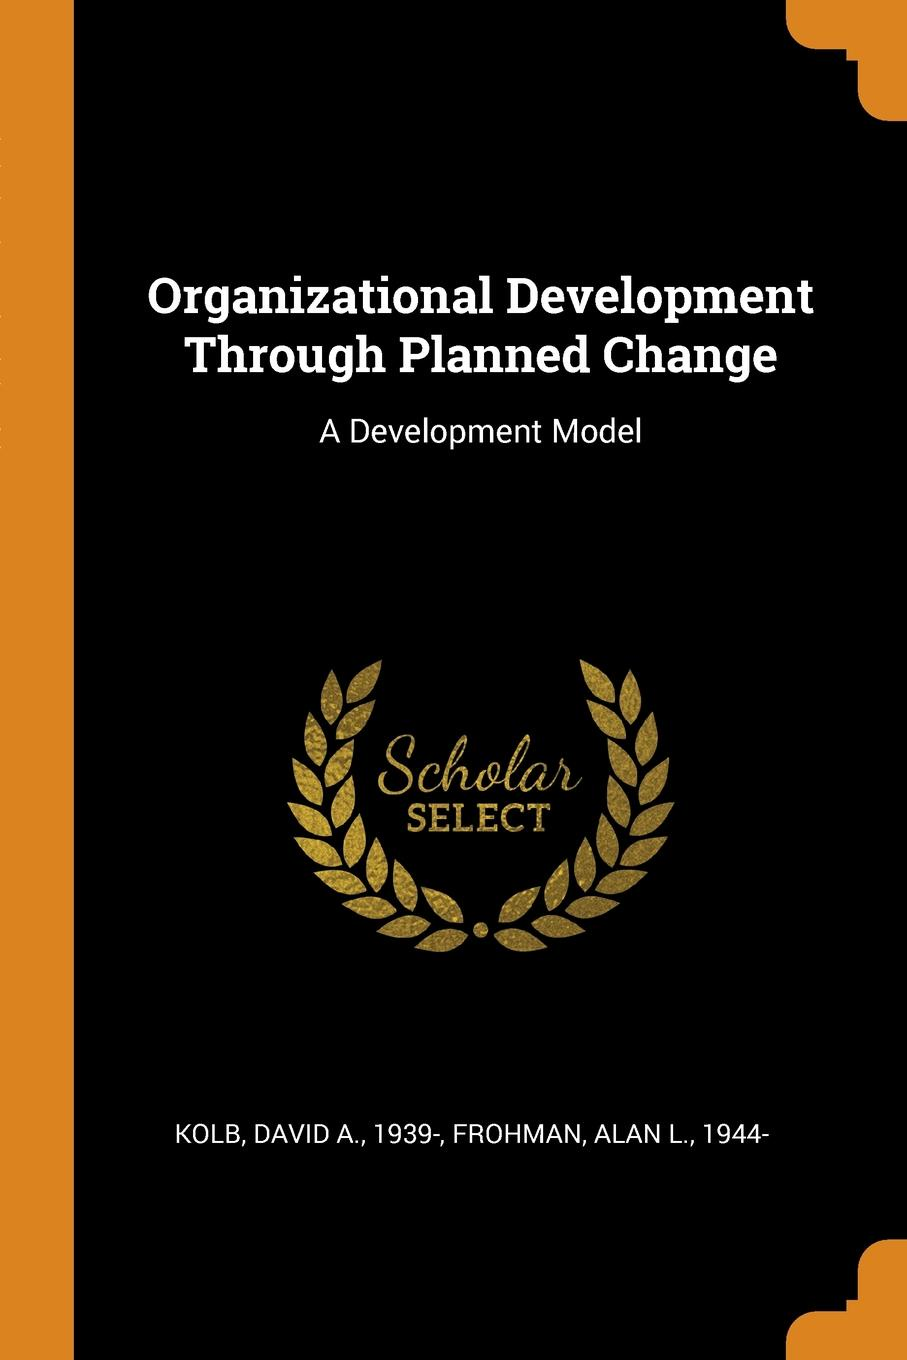 Organizational Development Through Planned Change. A Development Model